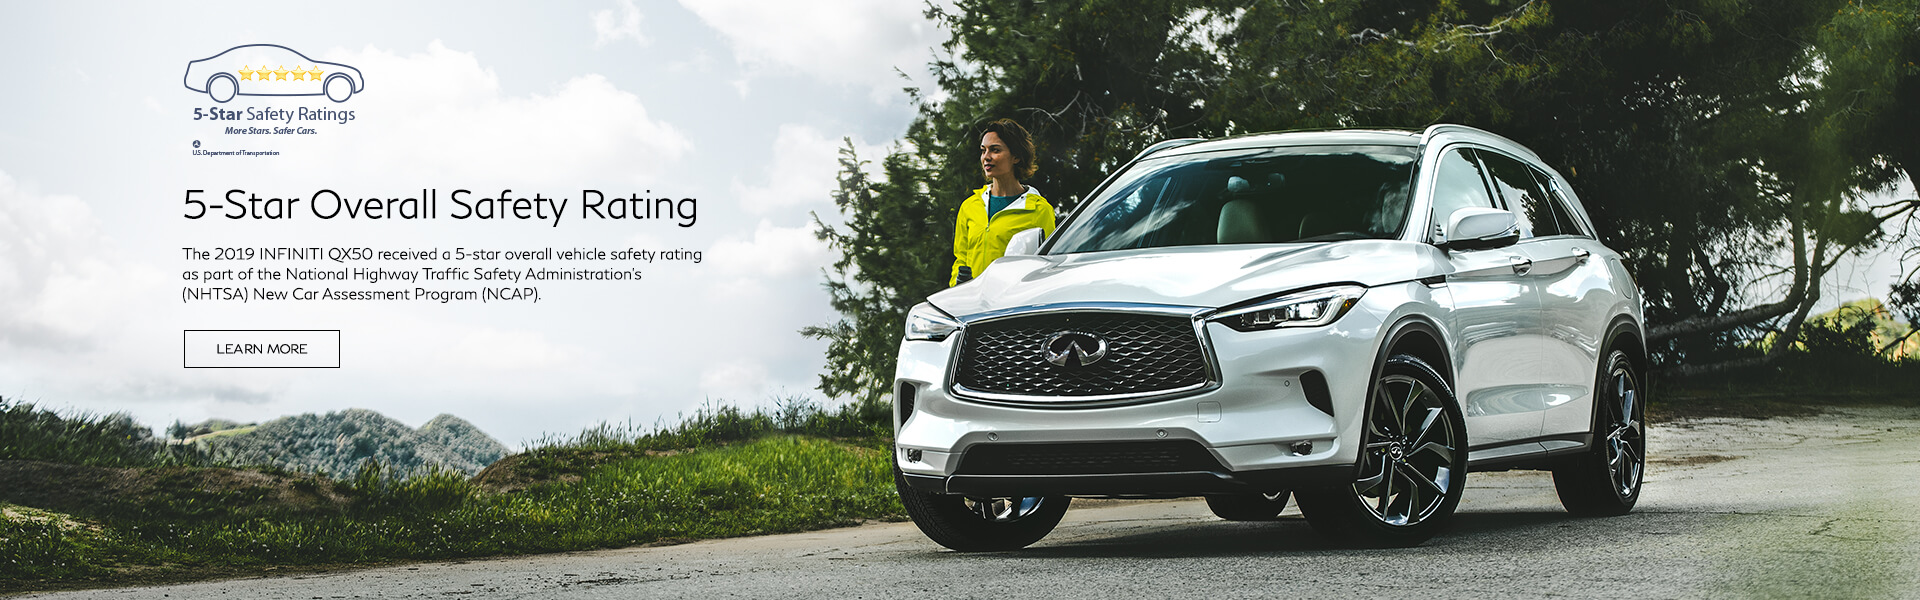 QX50 5-Star Safety Rating